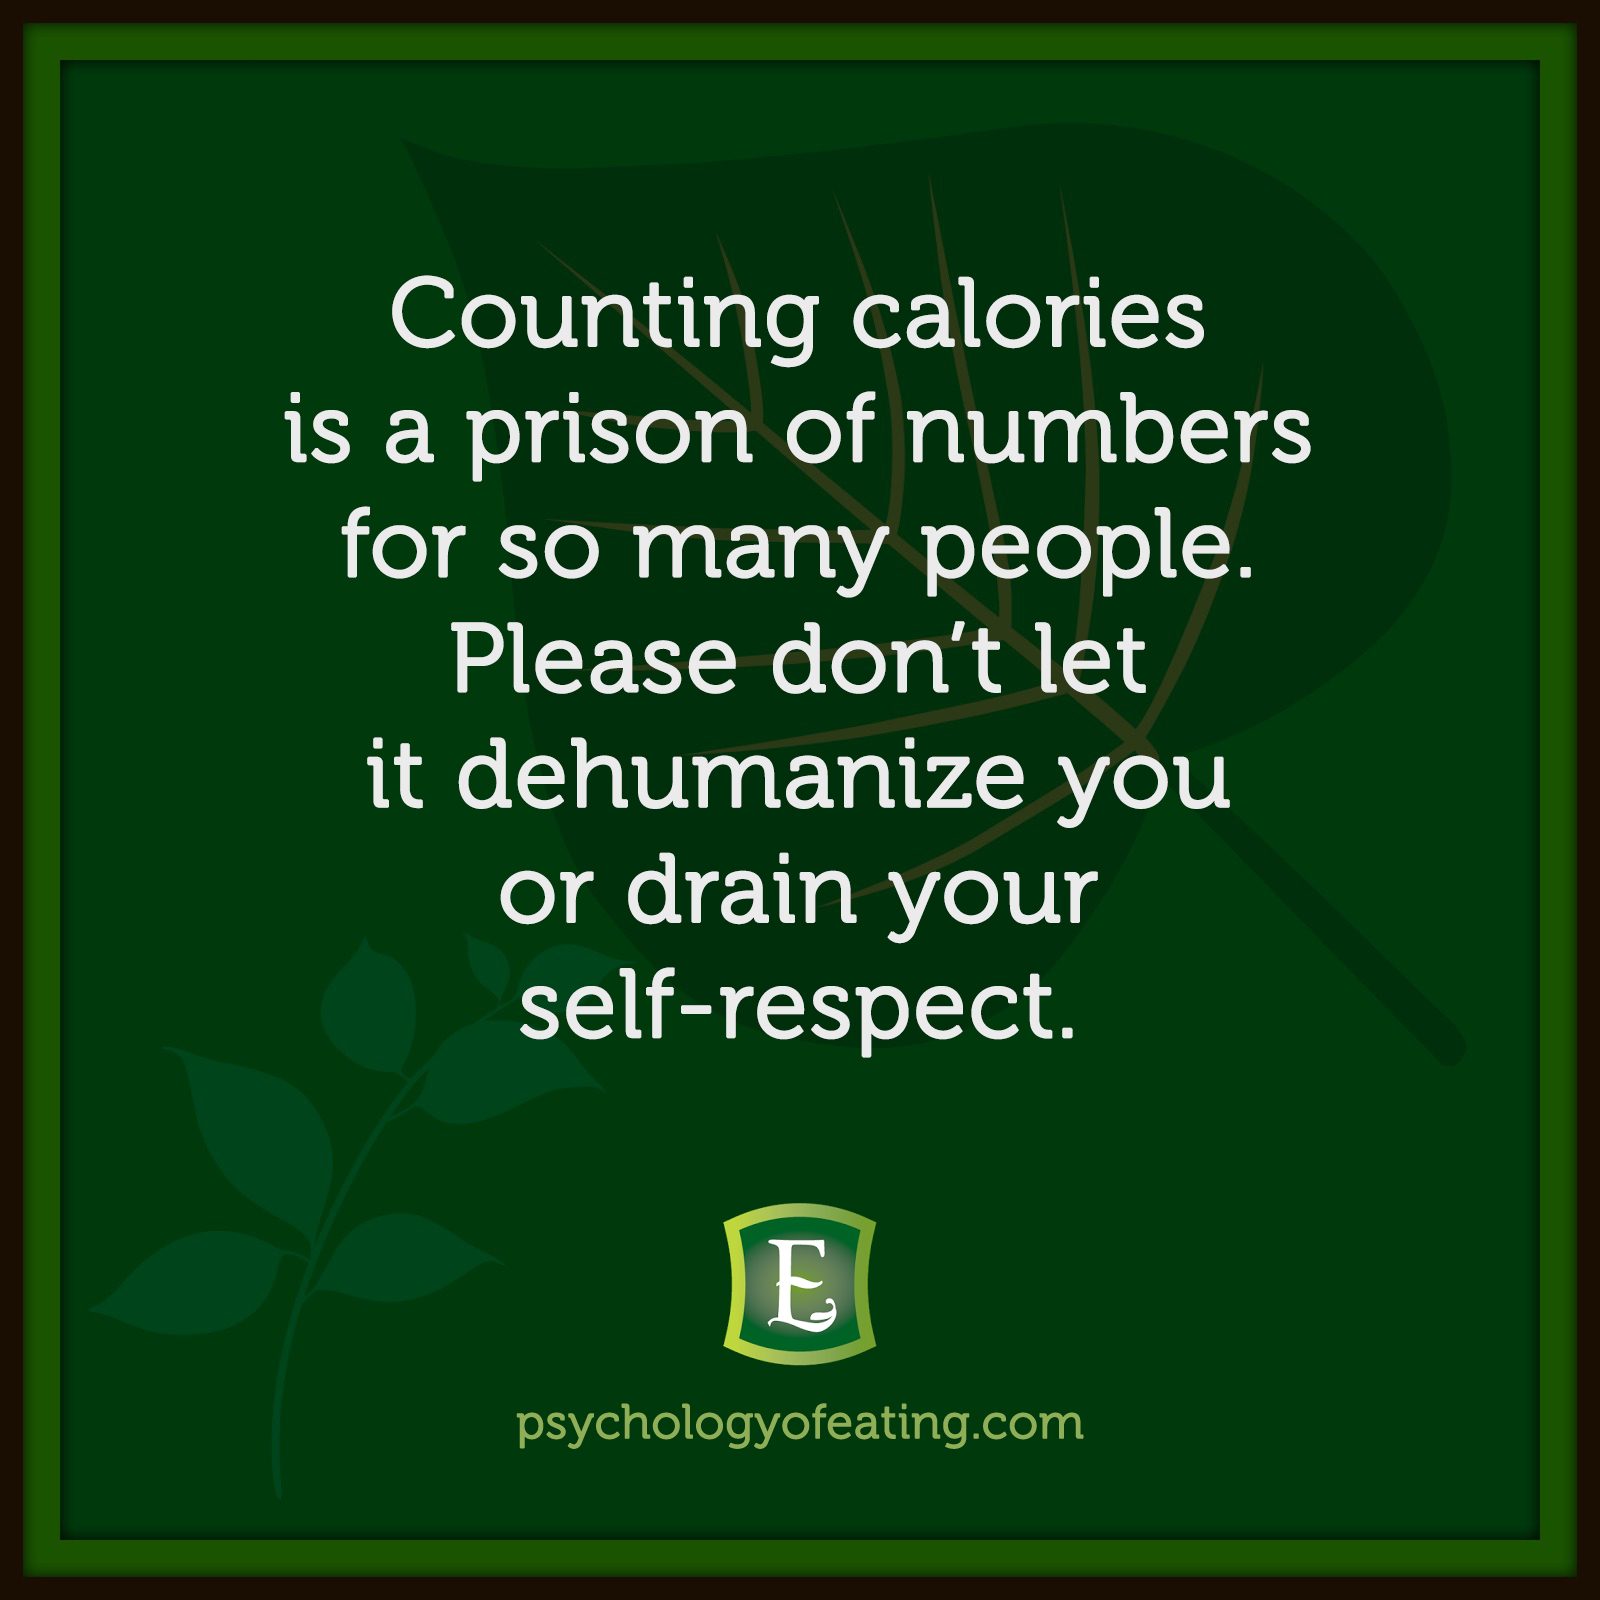 Counting calories is a prison of numbers for so many people. Please don't let it dehumanize you or drain your self-respect. #health #nutrition #eatingpsychology #IPE